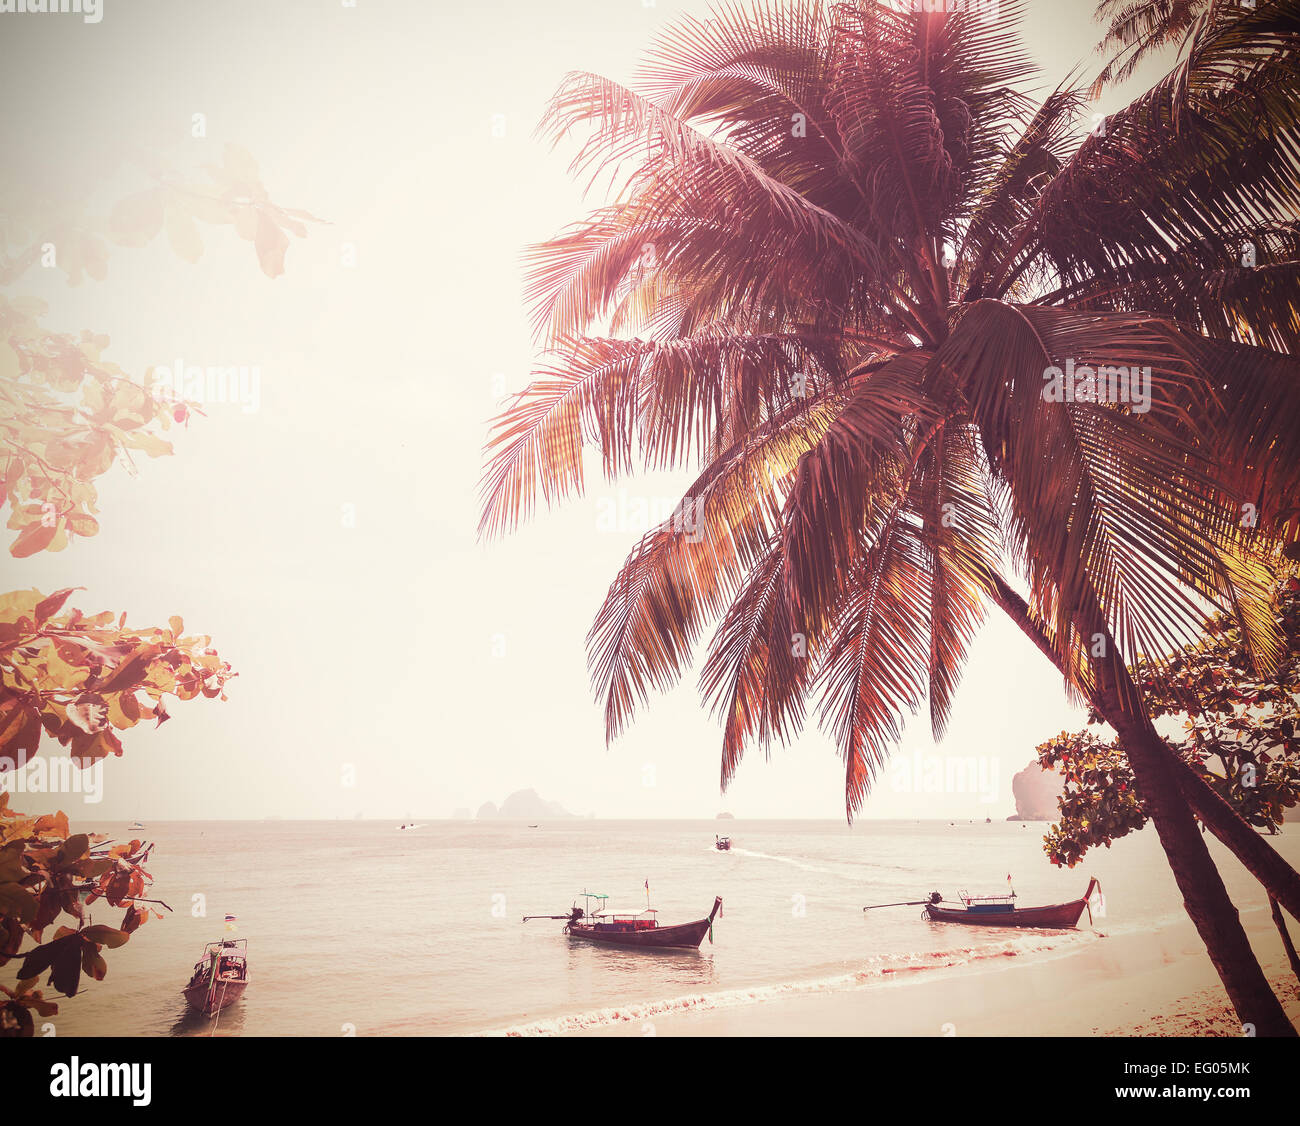 Vintage stylized photo of a beach, nature background. - Stock Image